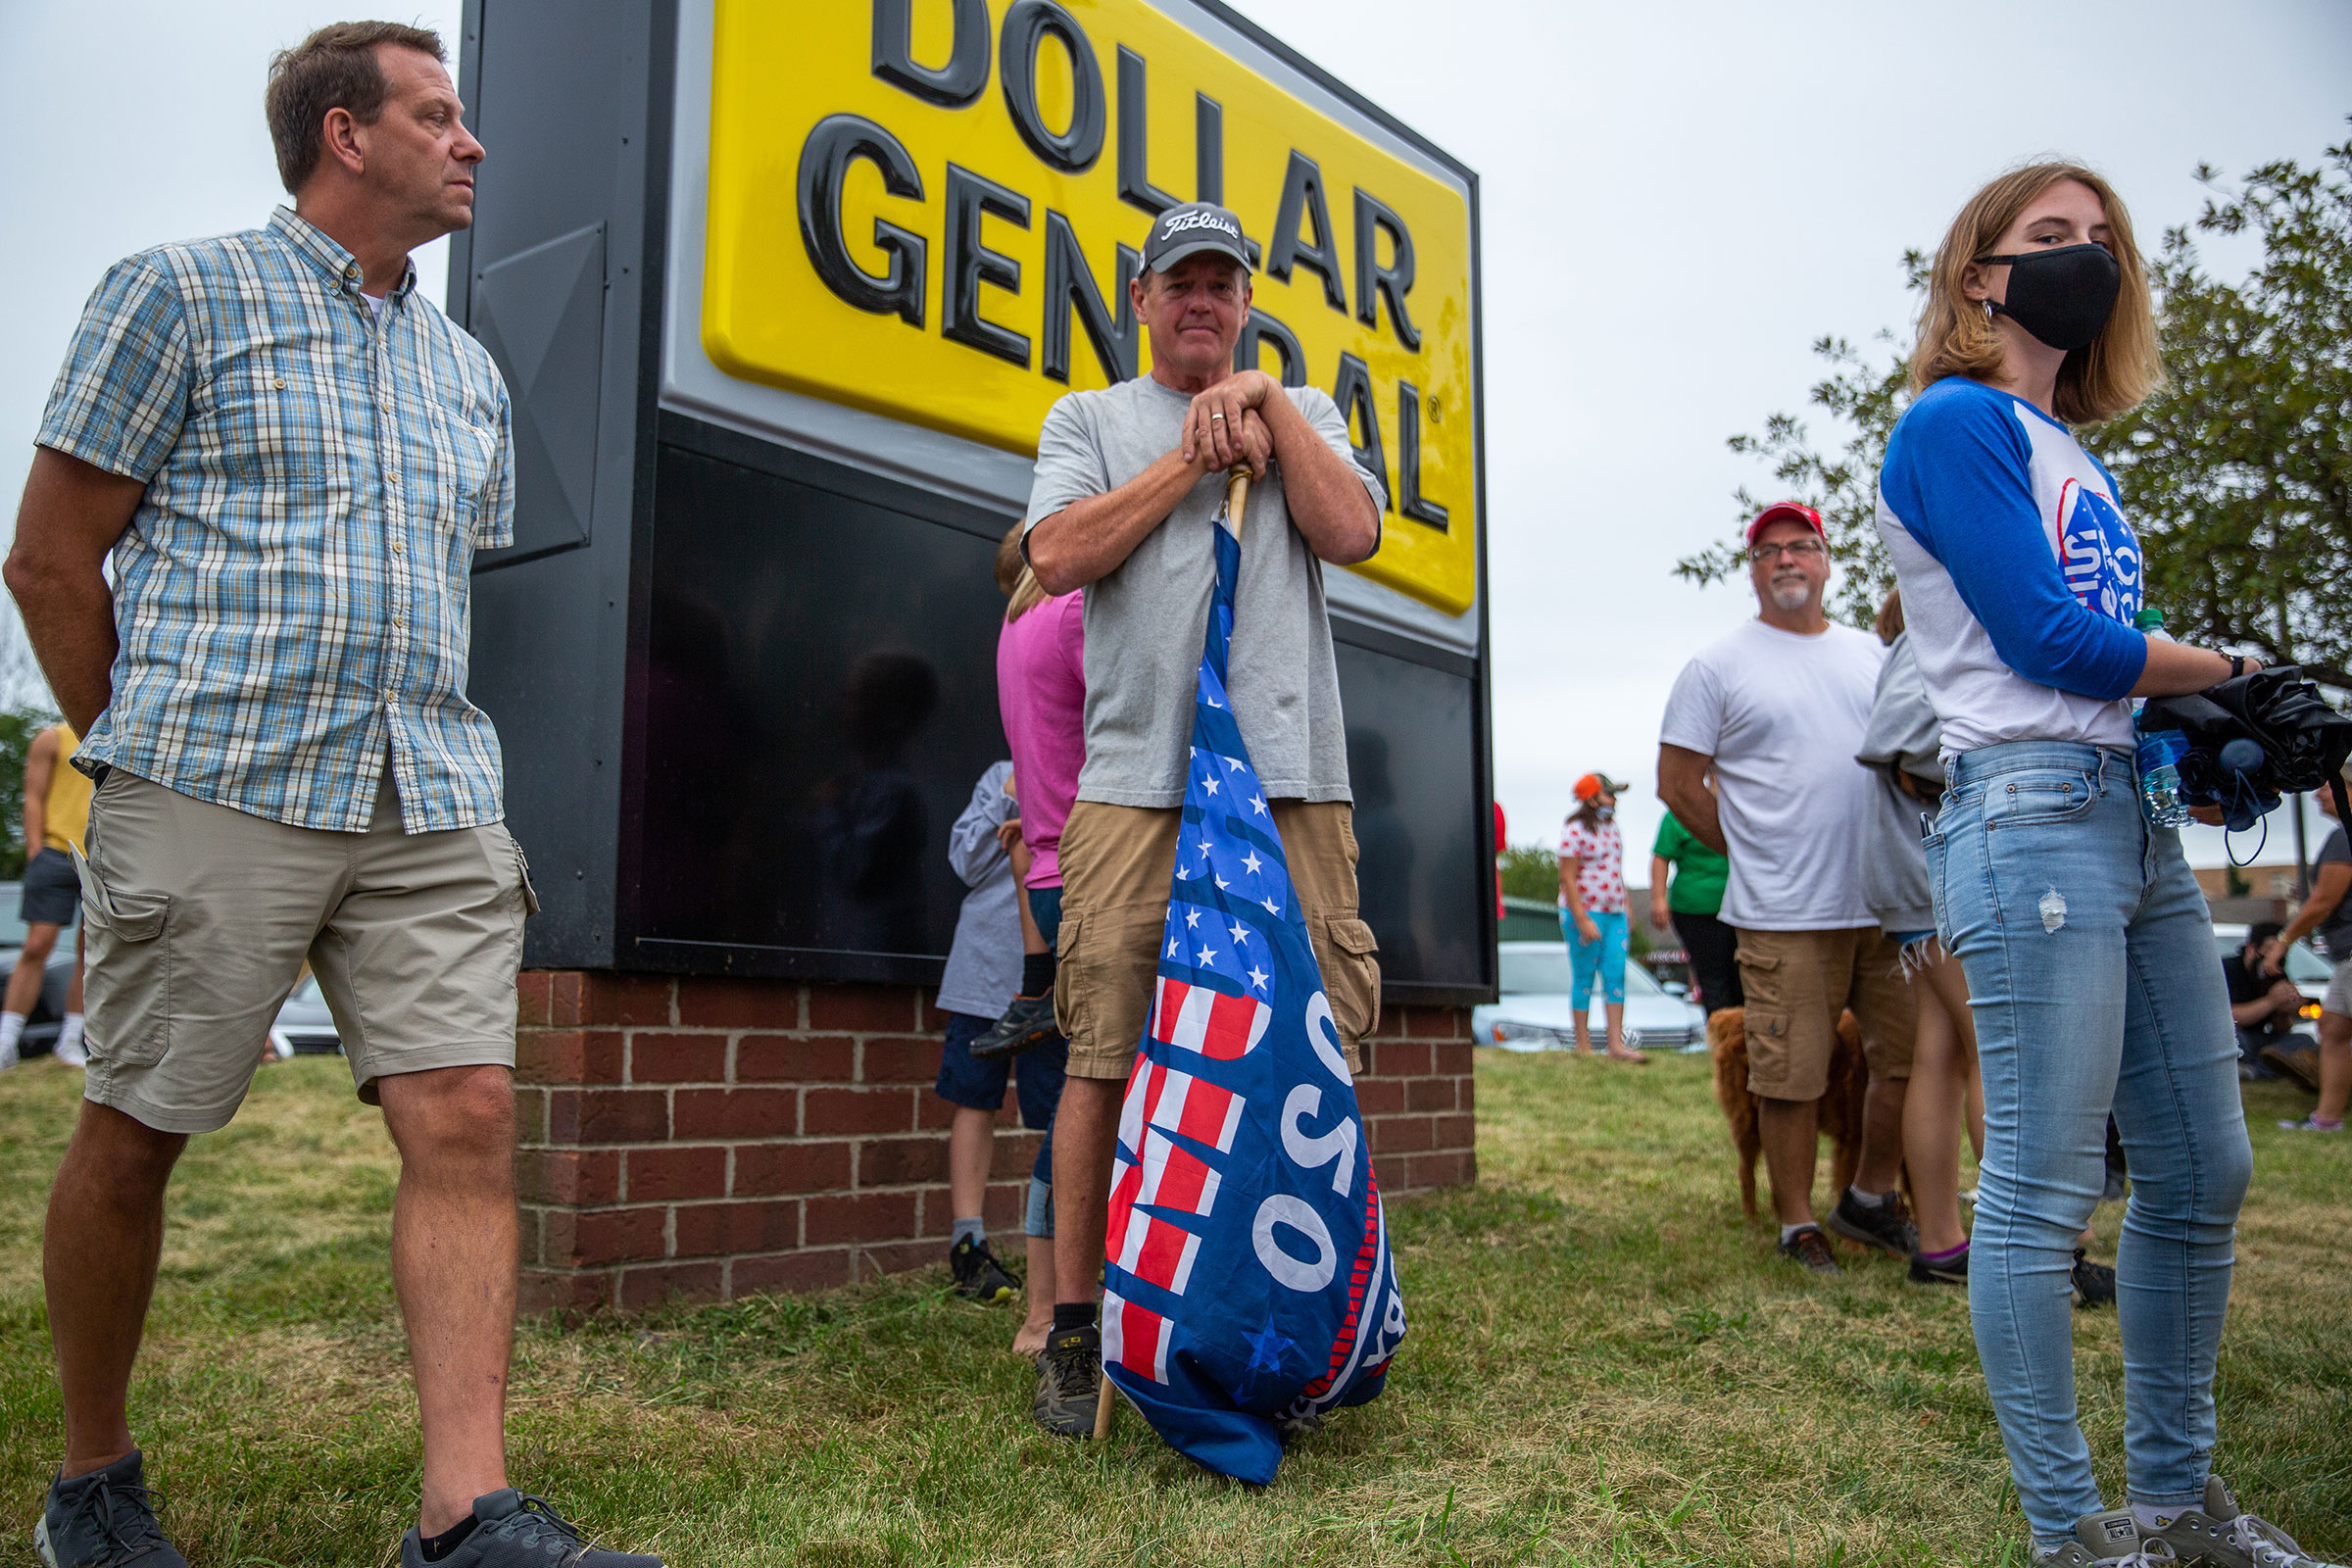 A supporter of President Donald Trump waits to see the President's motorcade in Kenosha, Wis., on Sept. 1, 2020.